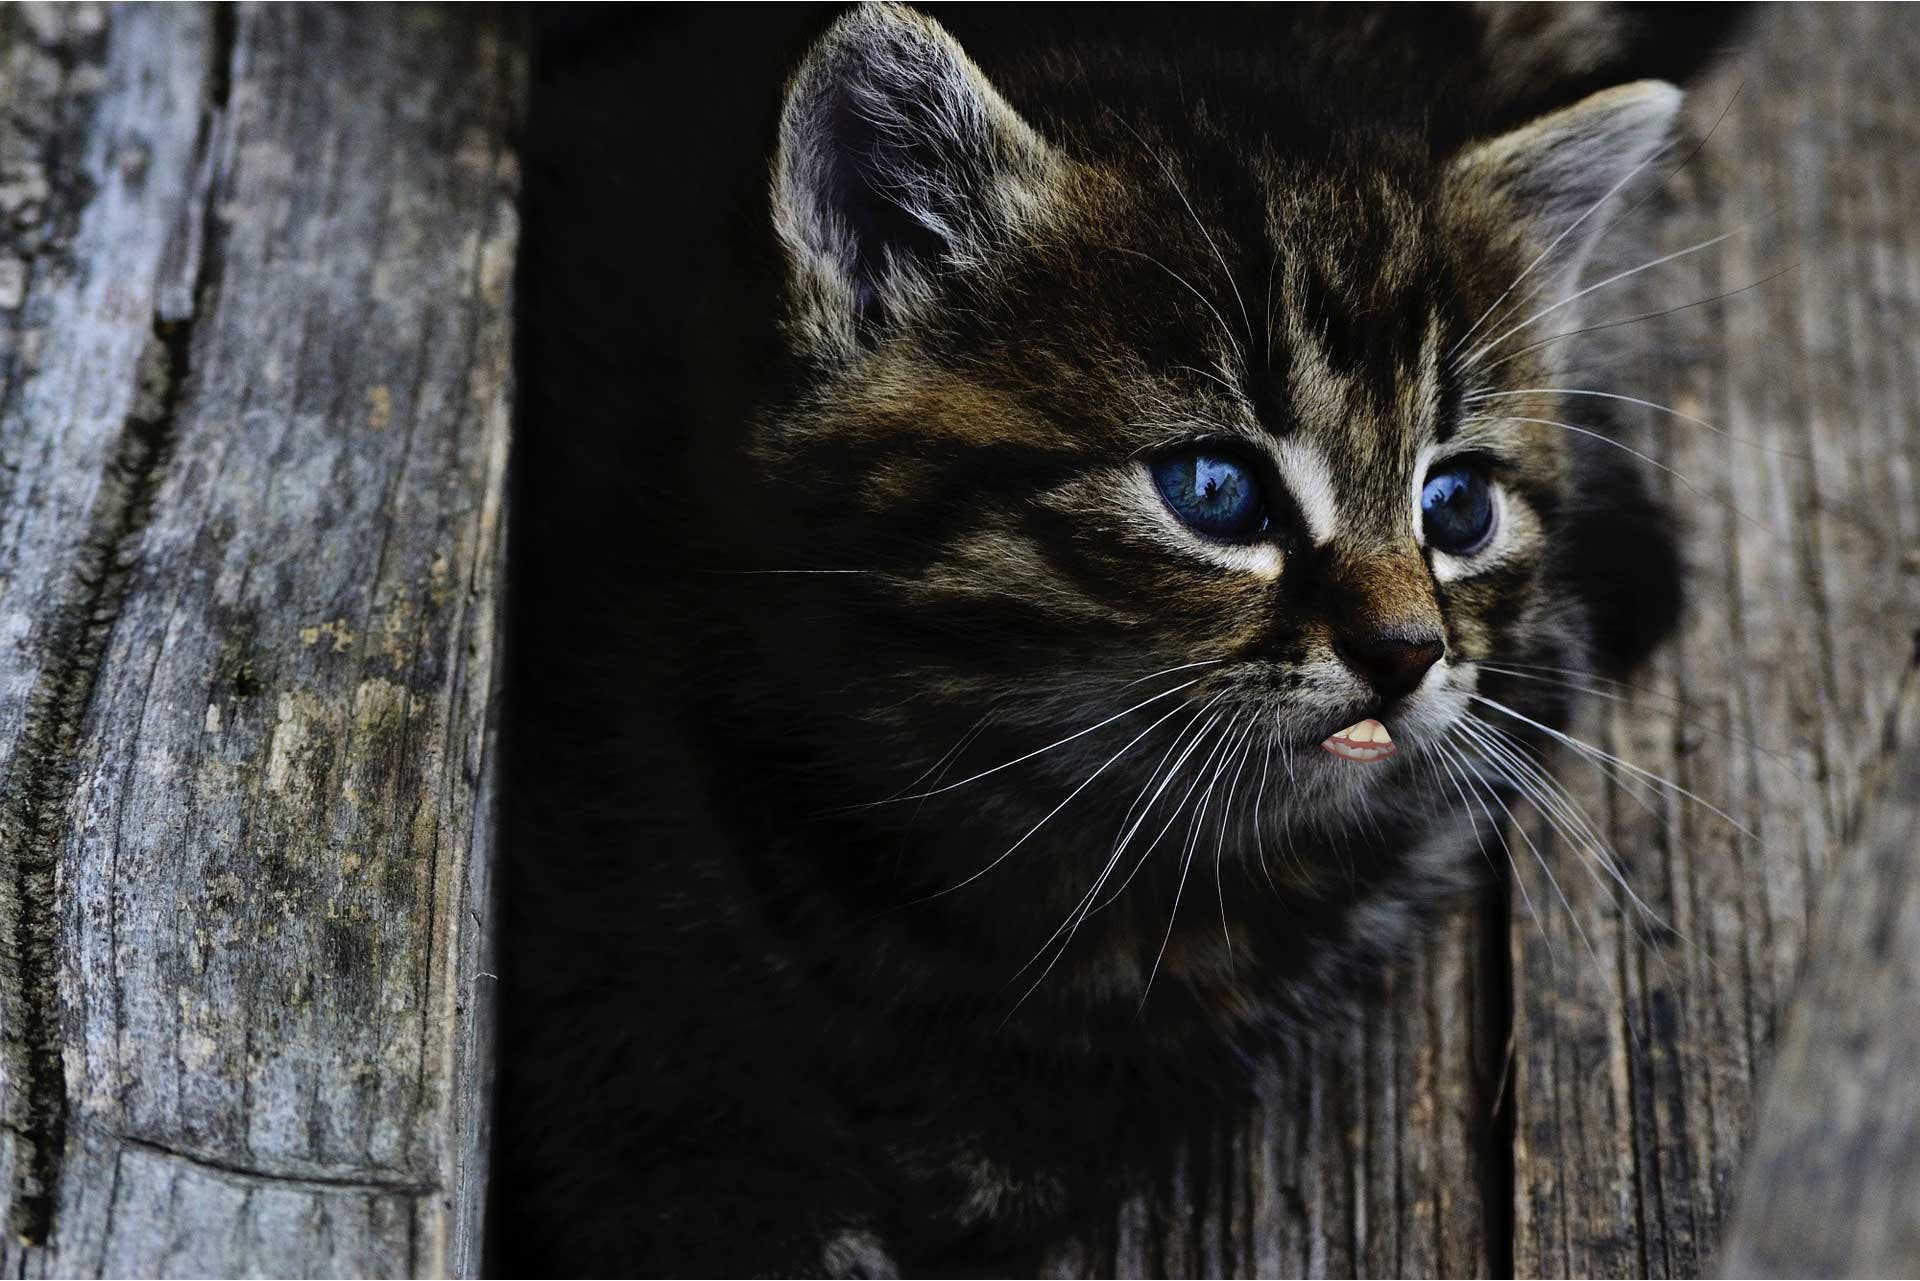 Adorable kitten with human mouth